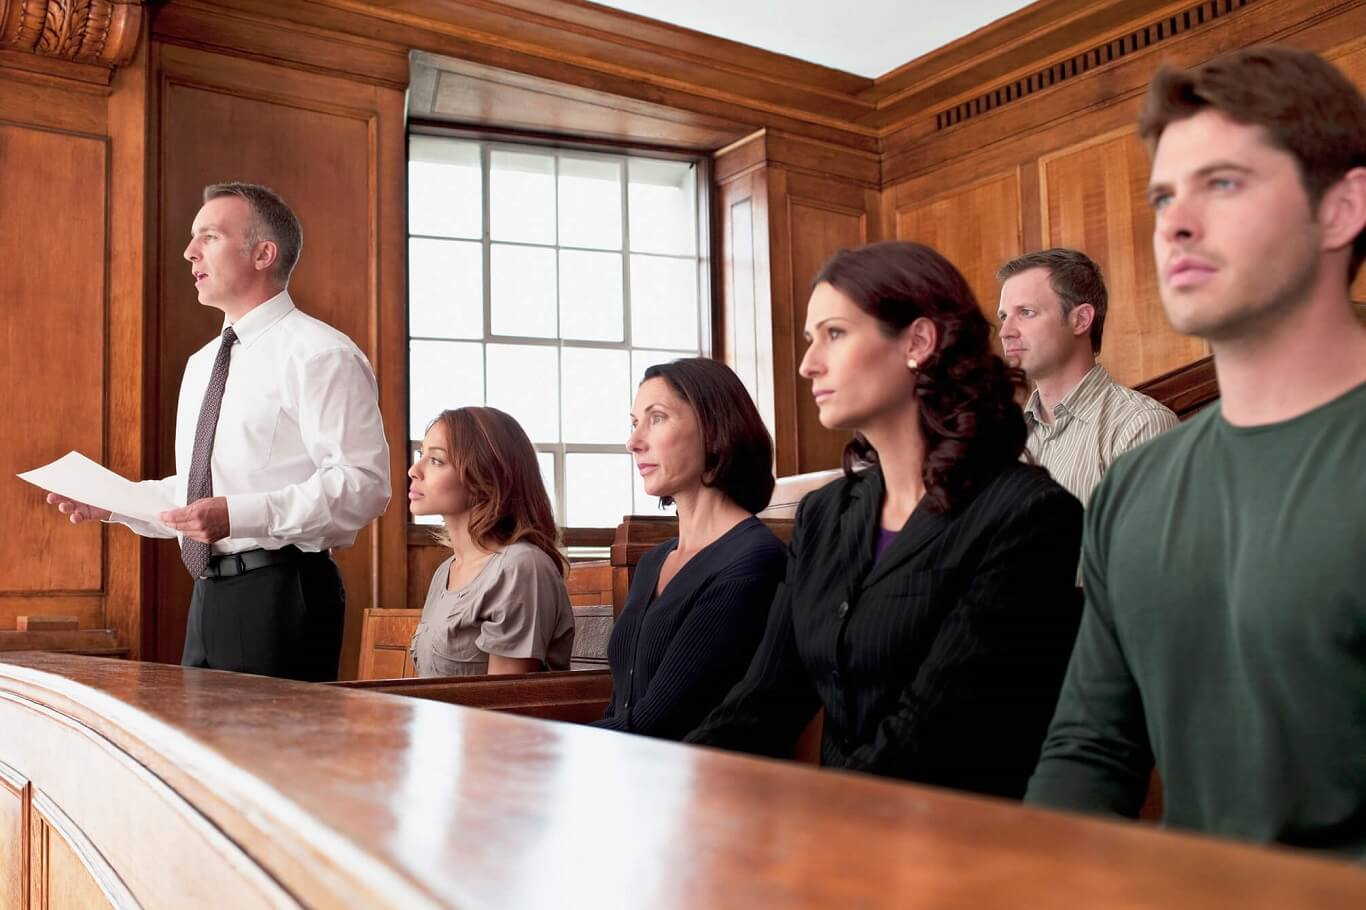 How to prepare for jury duty